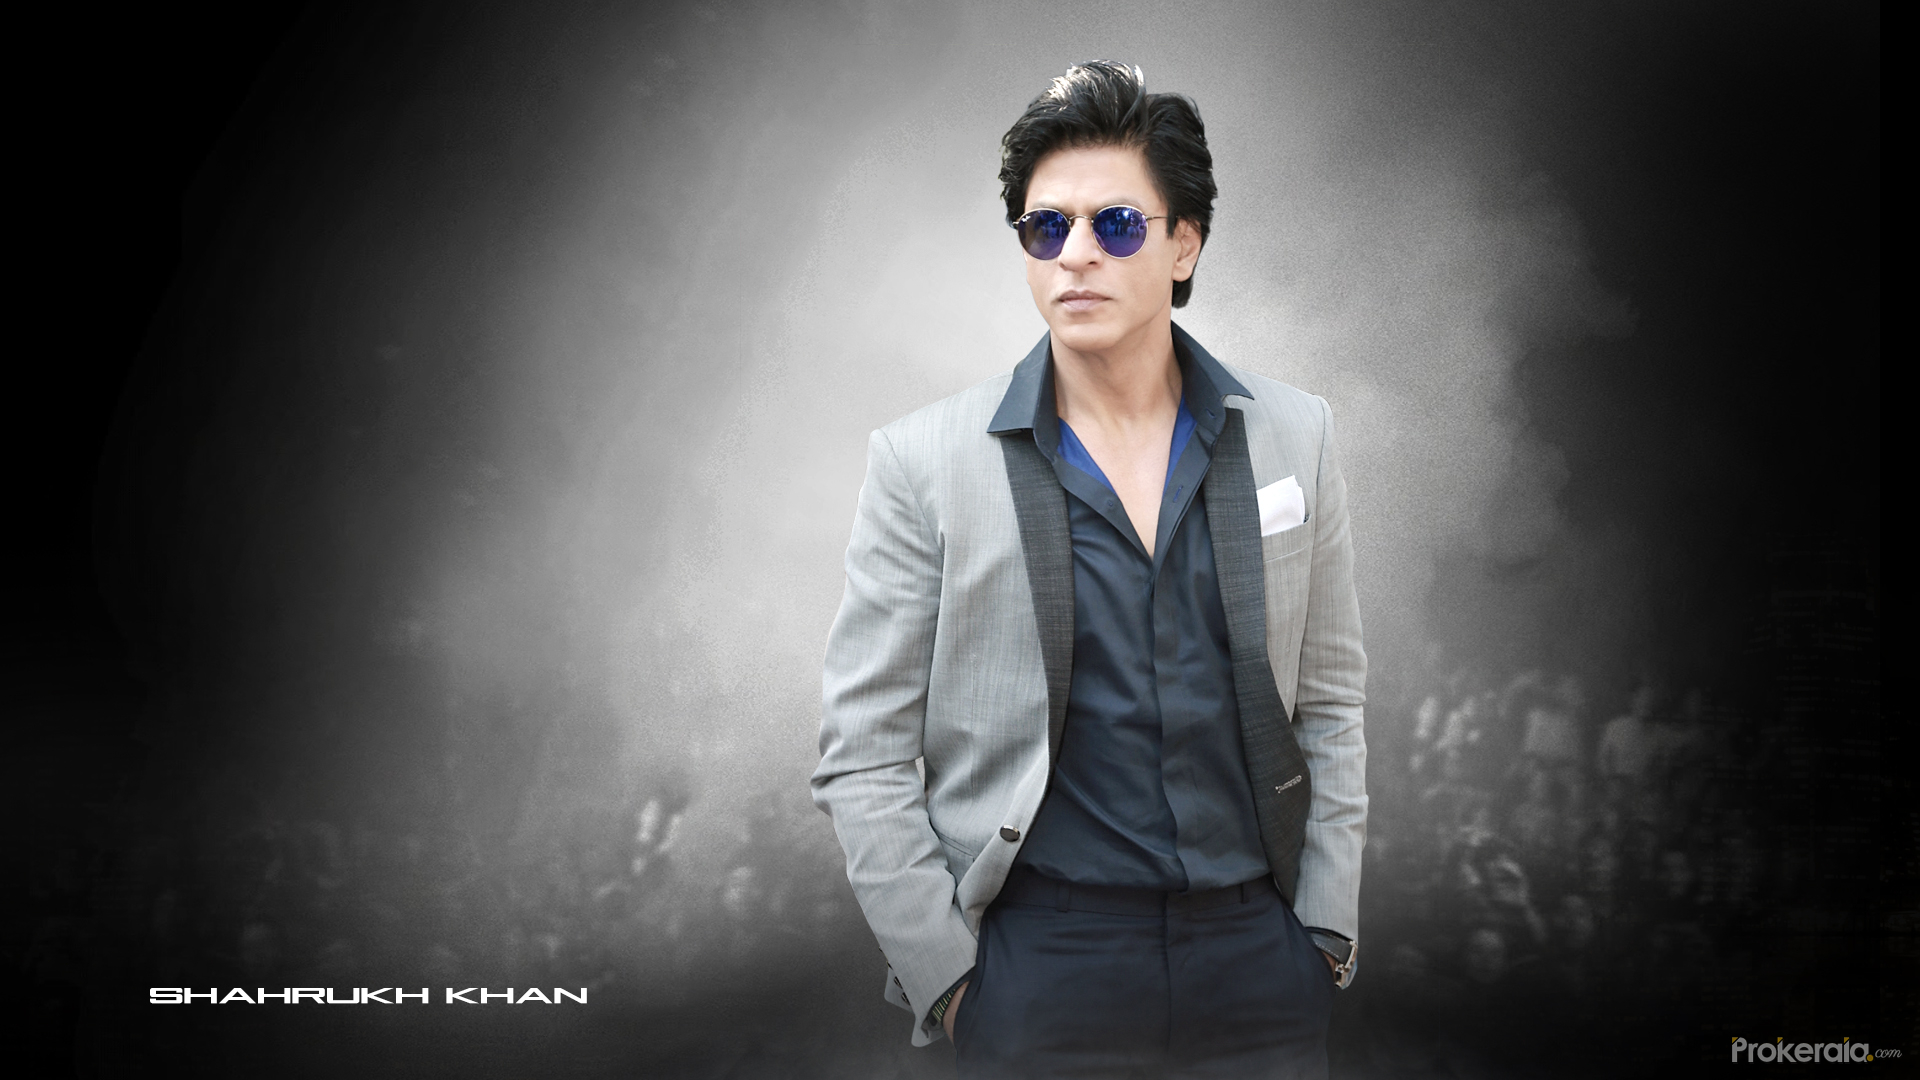 Shahrukh khan wallpaper - Shahrukh khan cool wallpaper ...